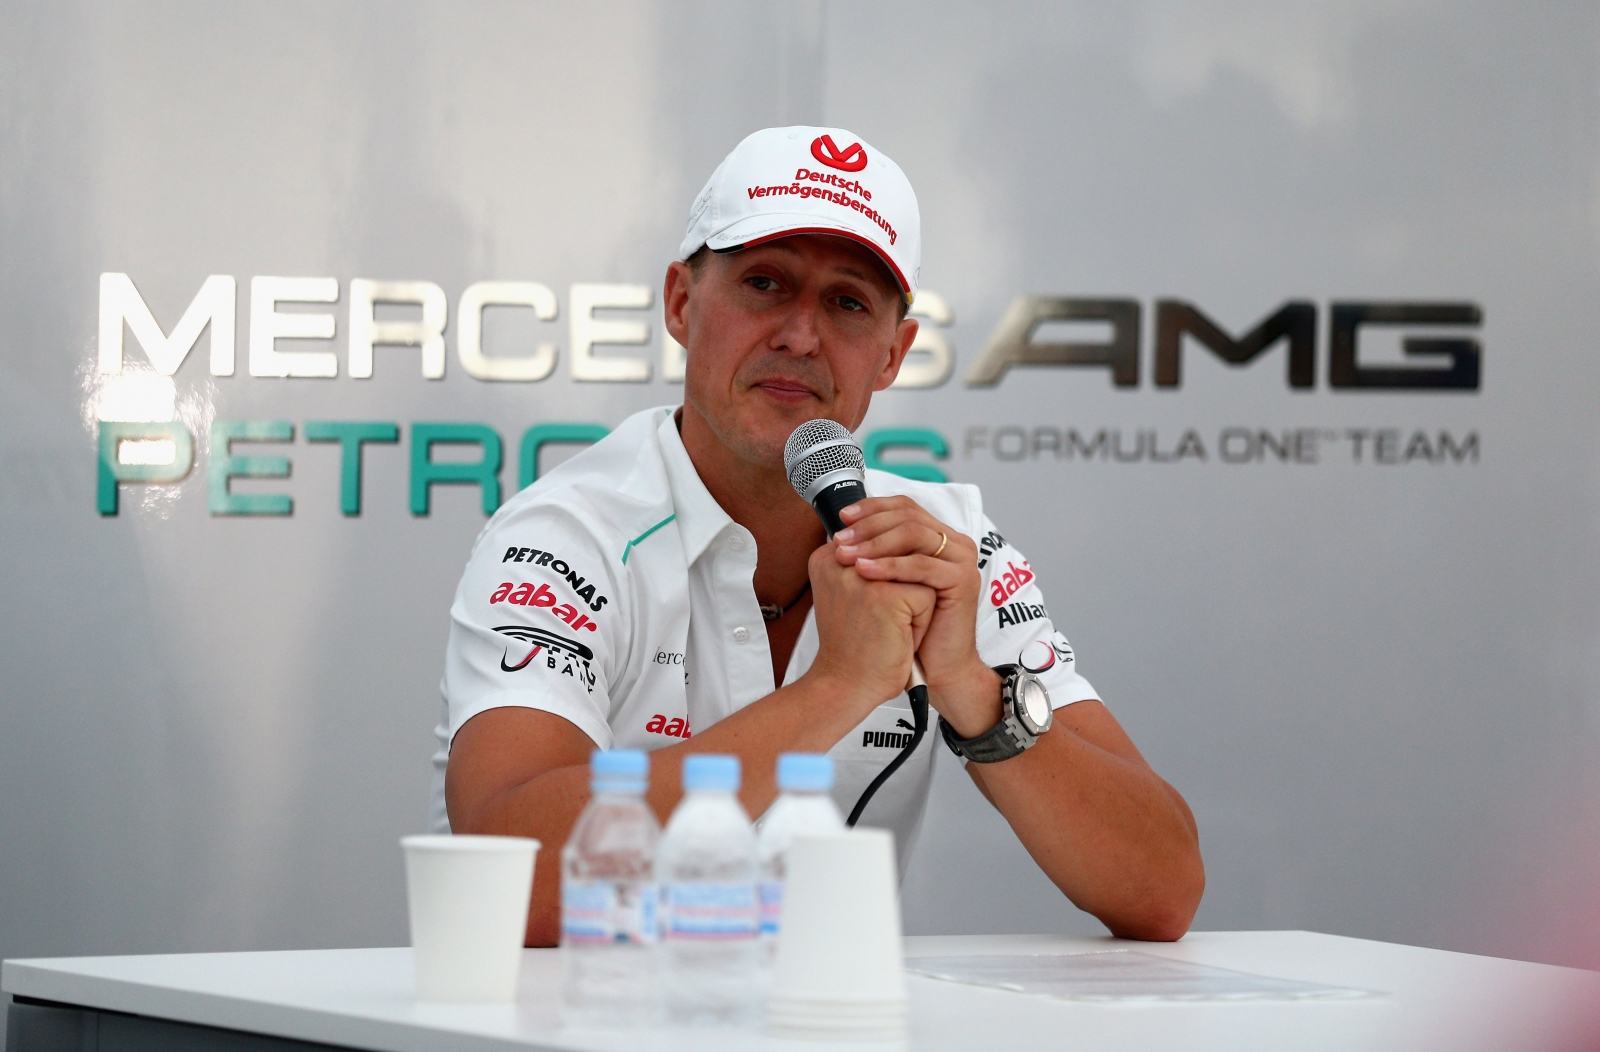 Michael Schumacher remains brand ambassador for Mercedes Benz while he recovers from ski crash injuries